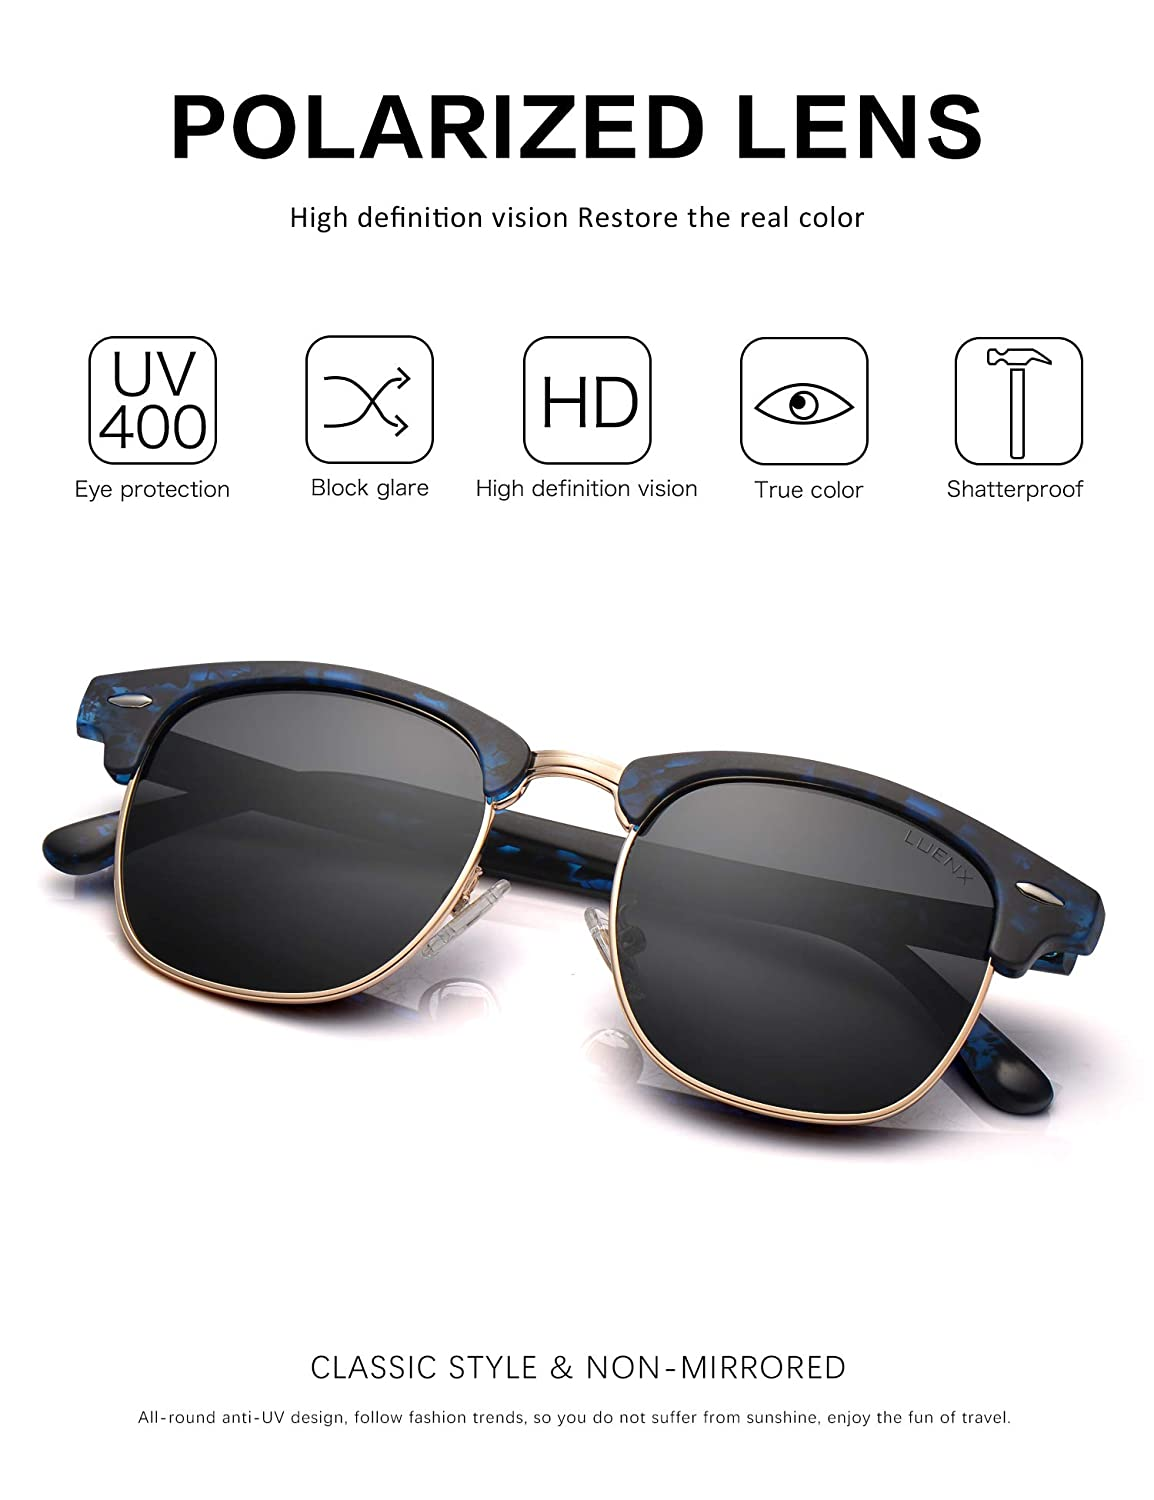 a89ca8b808 Amazon.com  LUENX Men Semi Rimless Polarized Sunglasses Women UV 400  Protection Black Lens Tortoise Blue Retro Frame 51MM with Case  Sports    Outdoors